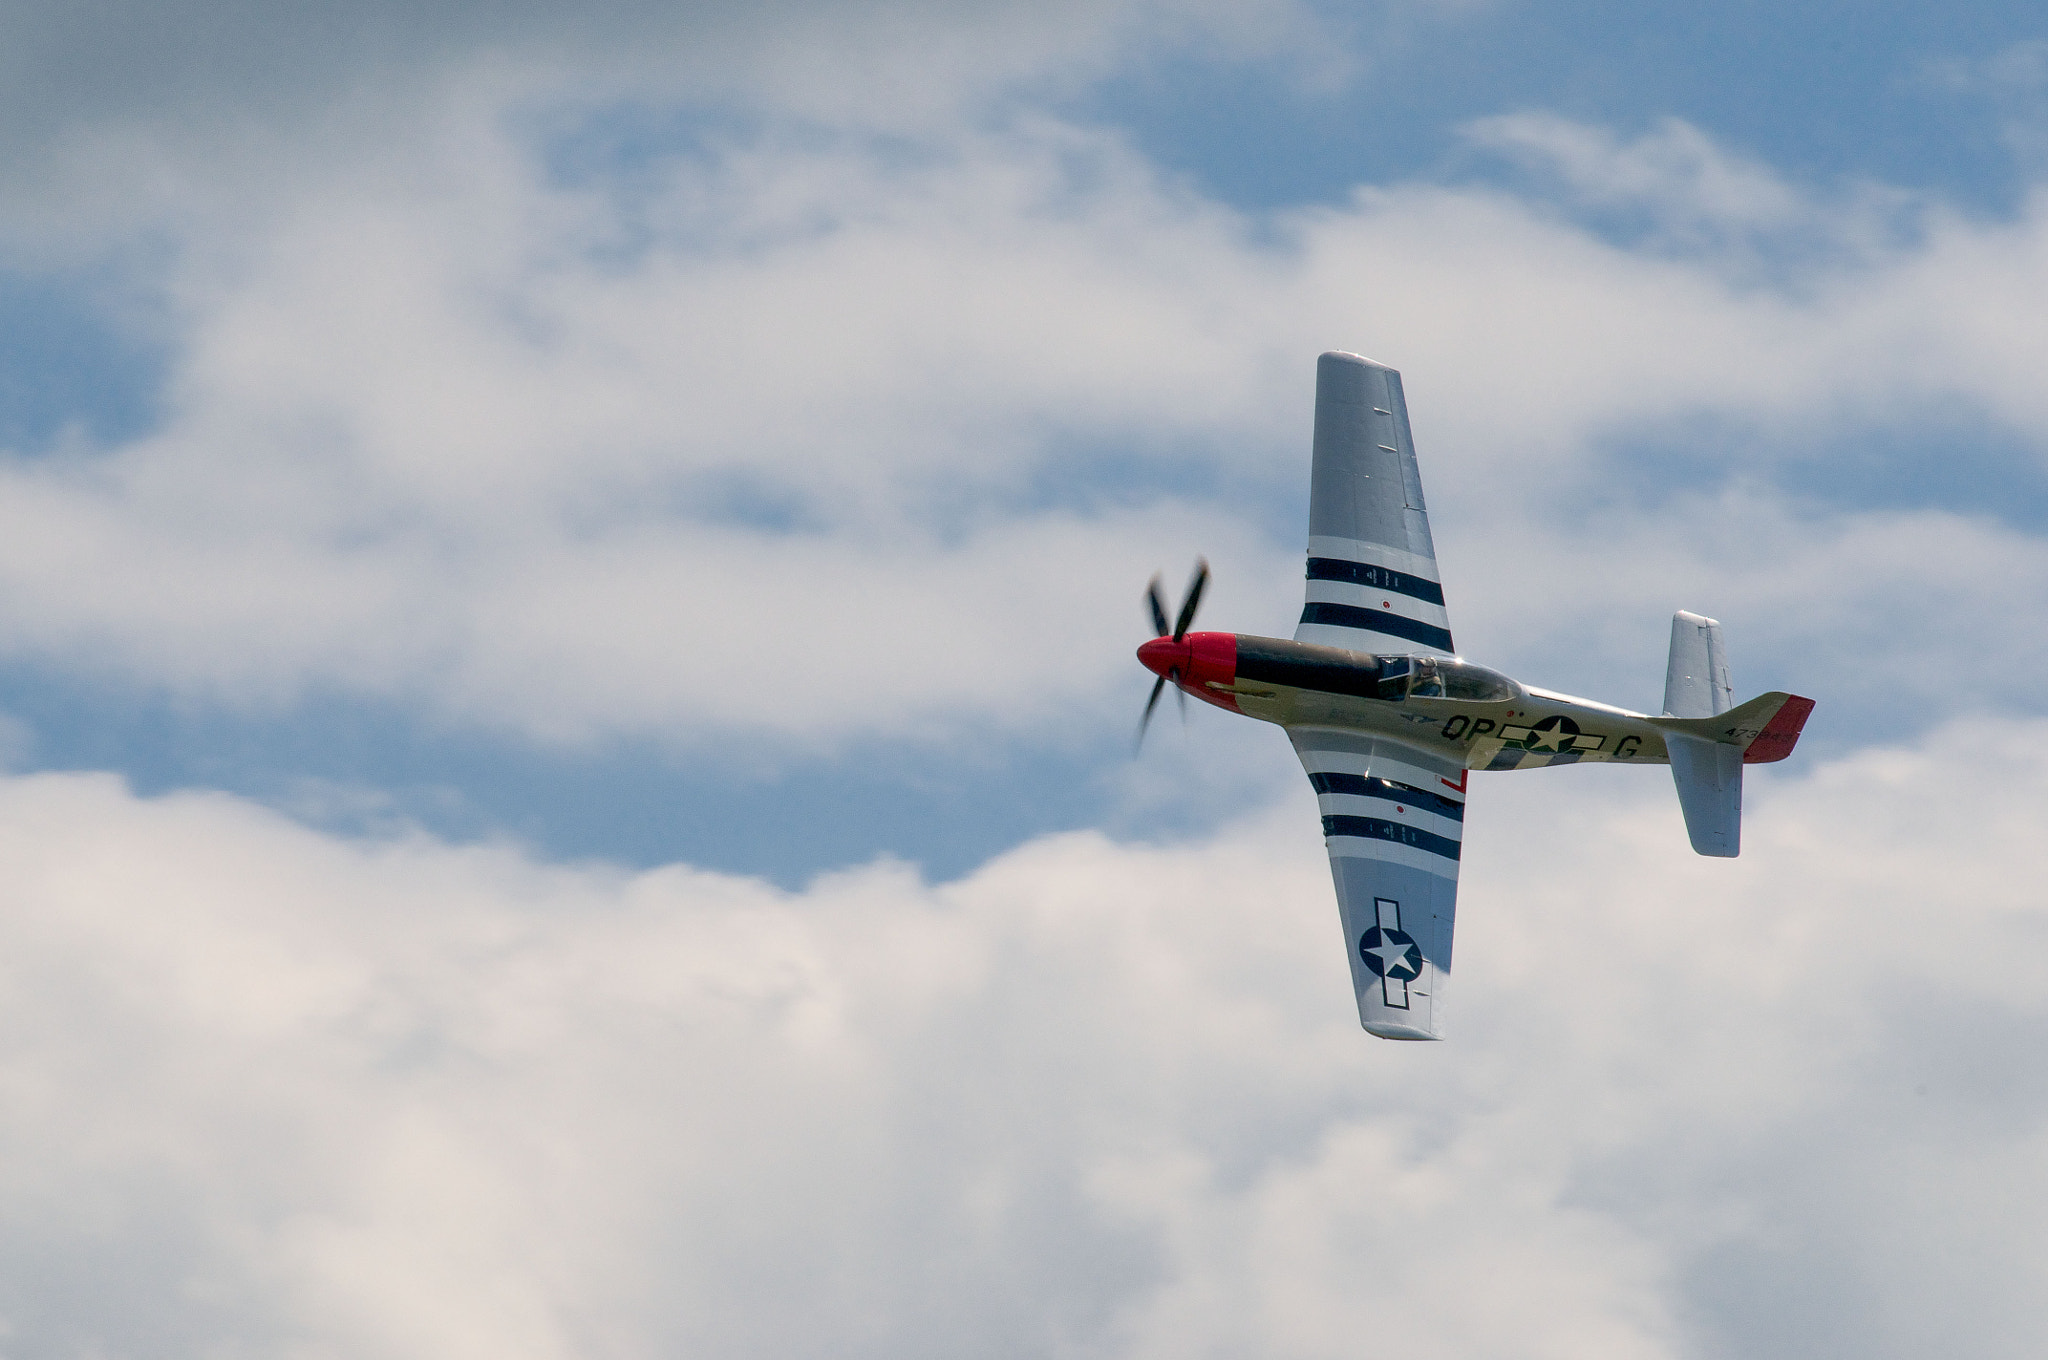 Photograph P-51 Mustang by Adam Uhrich on 500px